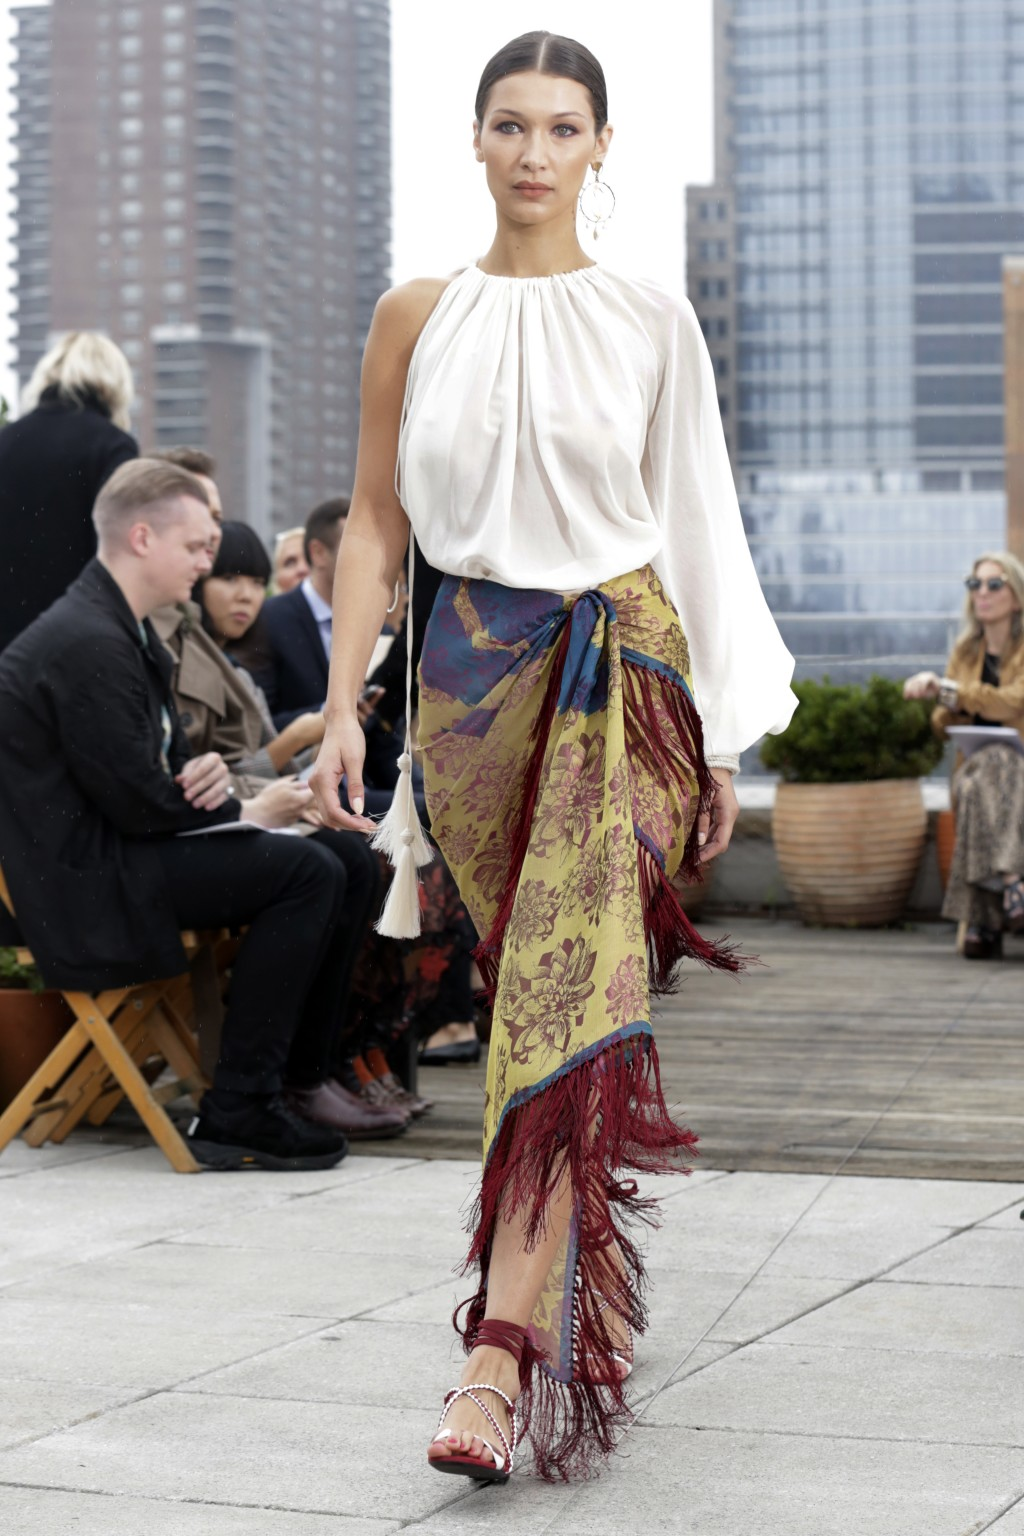 Bella Hadid models fashion from the Oscar de la Renta spring 2019 collection during Fashion Week in New York, Tuesday, Sept. 11, 2018. (AP Photo/Richa